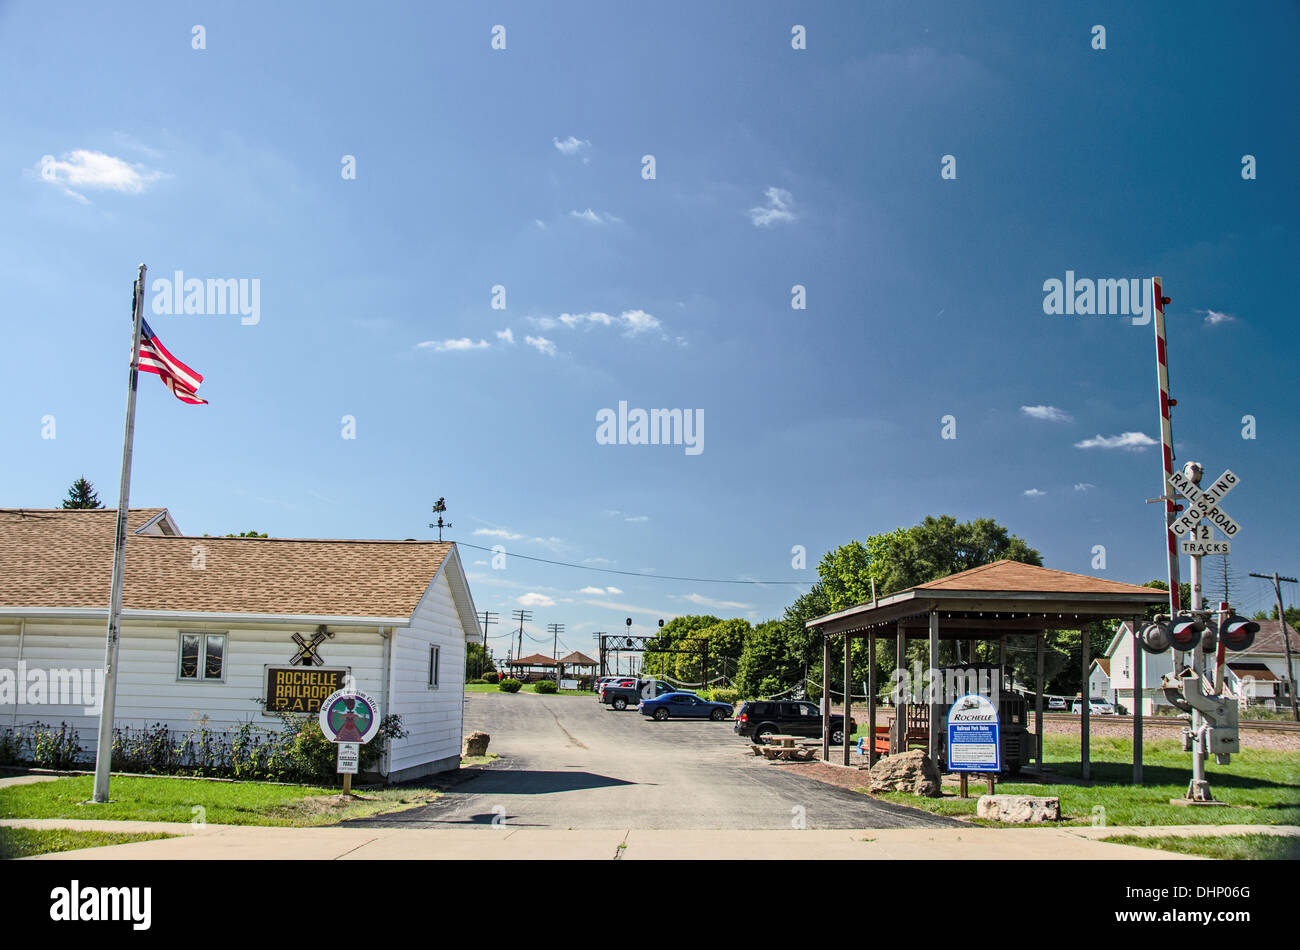 The Rochelle Railroad Park in Rochelle, Illinois, a town along the Lincoln Highway, - Stock Image